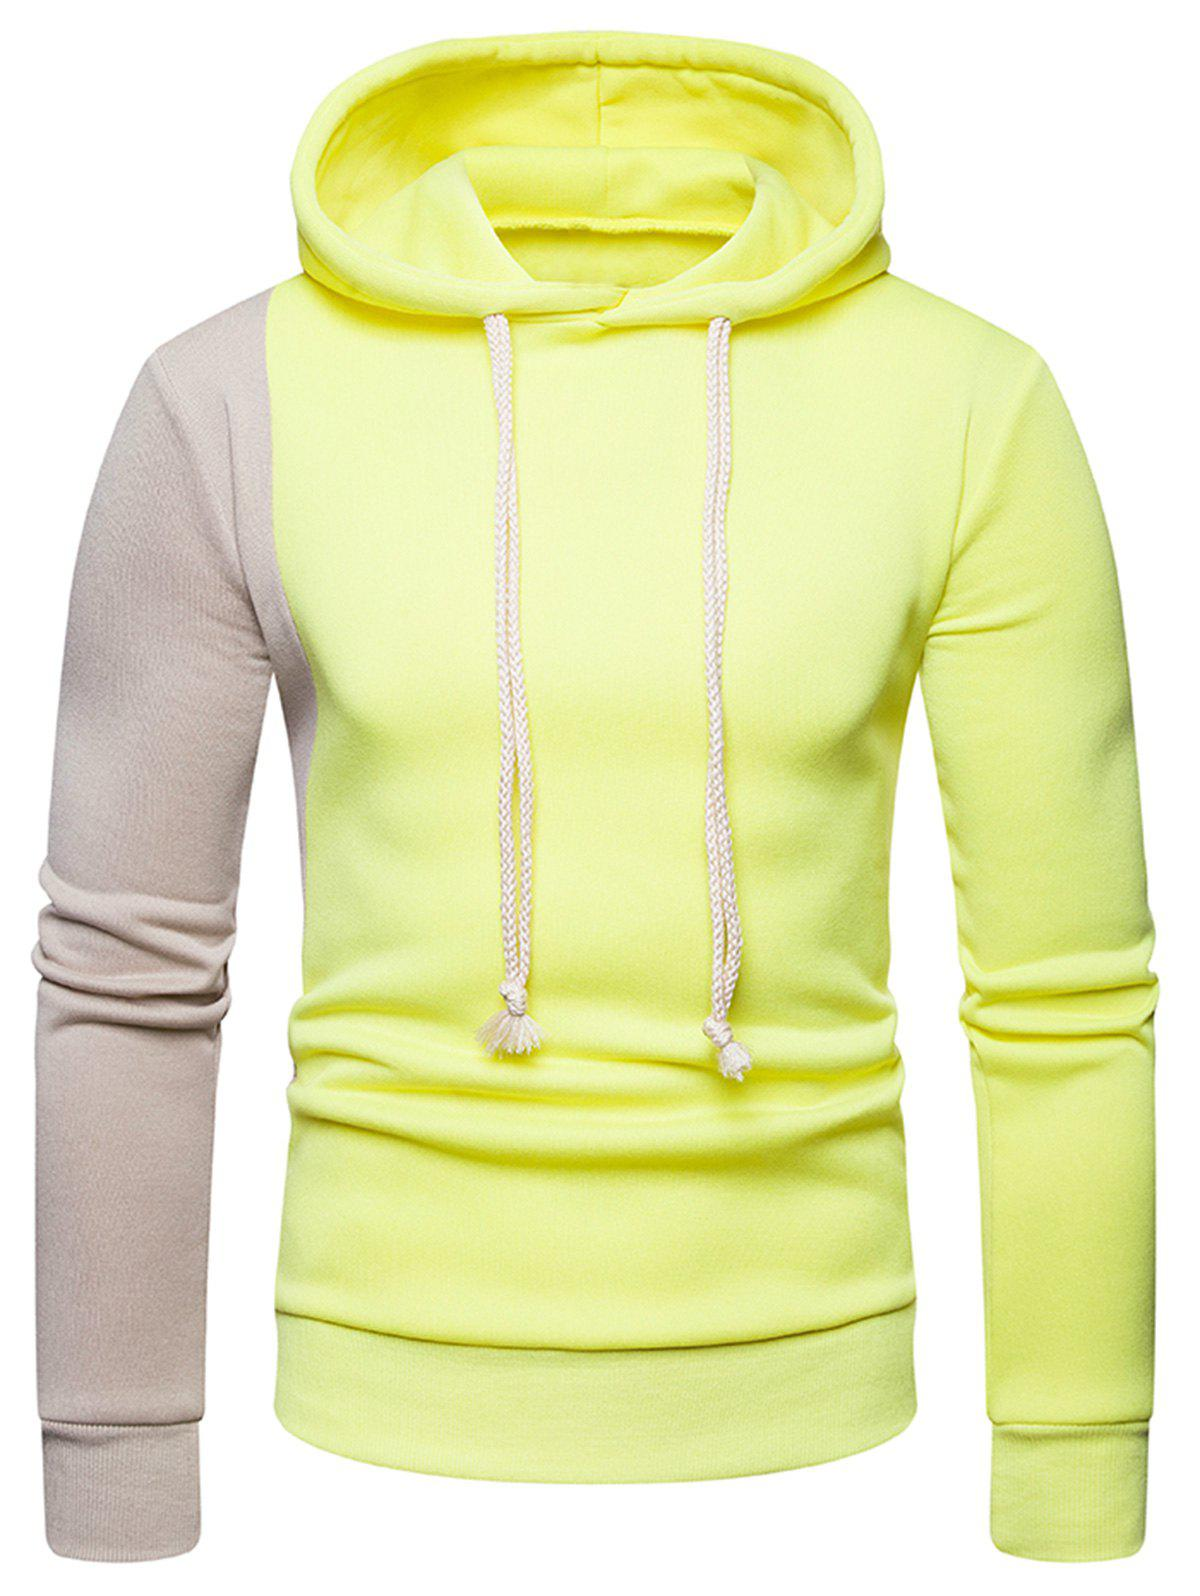 Contrast Color Long Sleeves Drawstring Hoodie - YELLOW XL